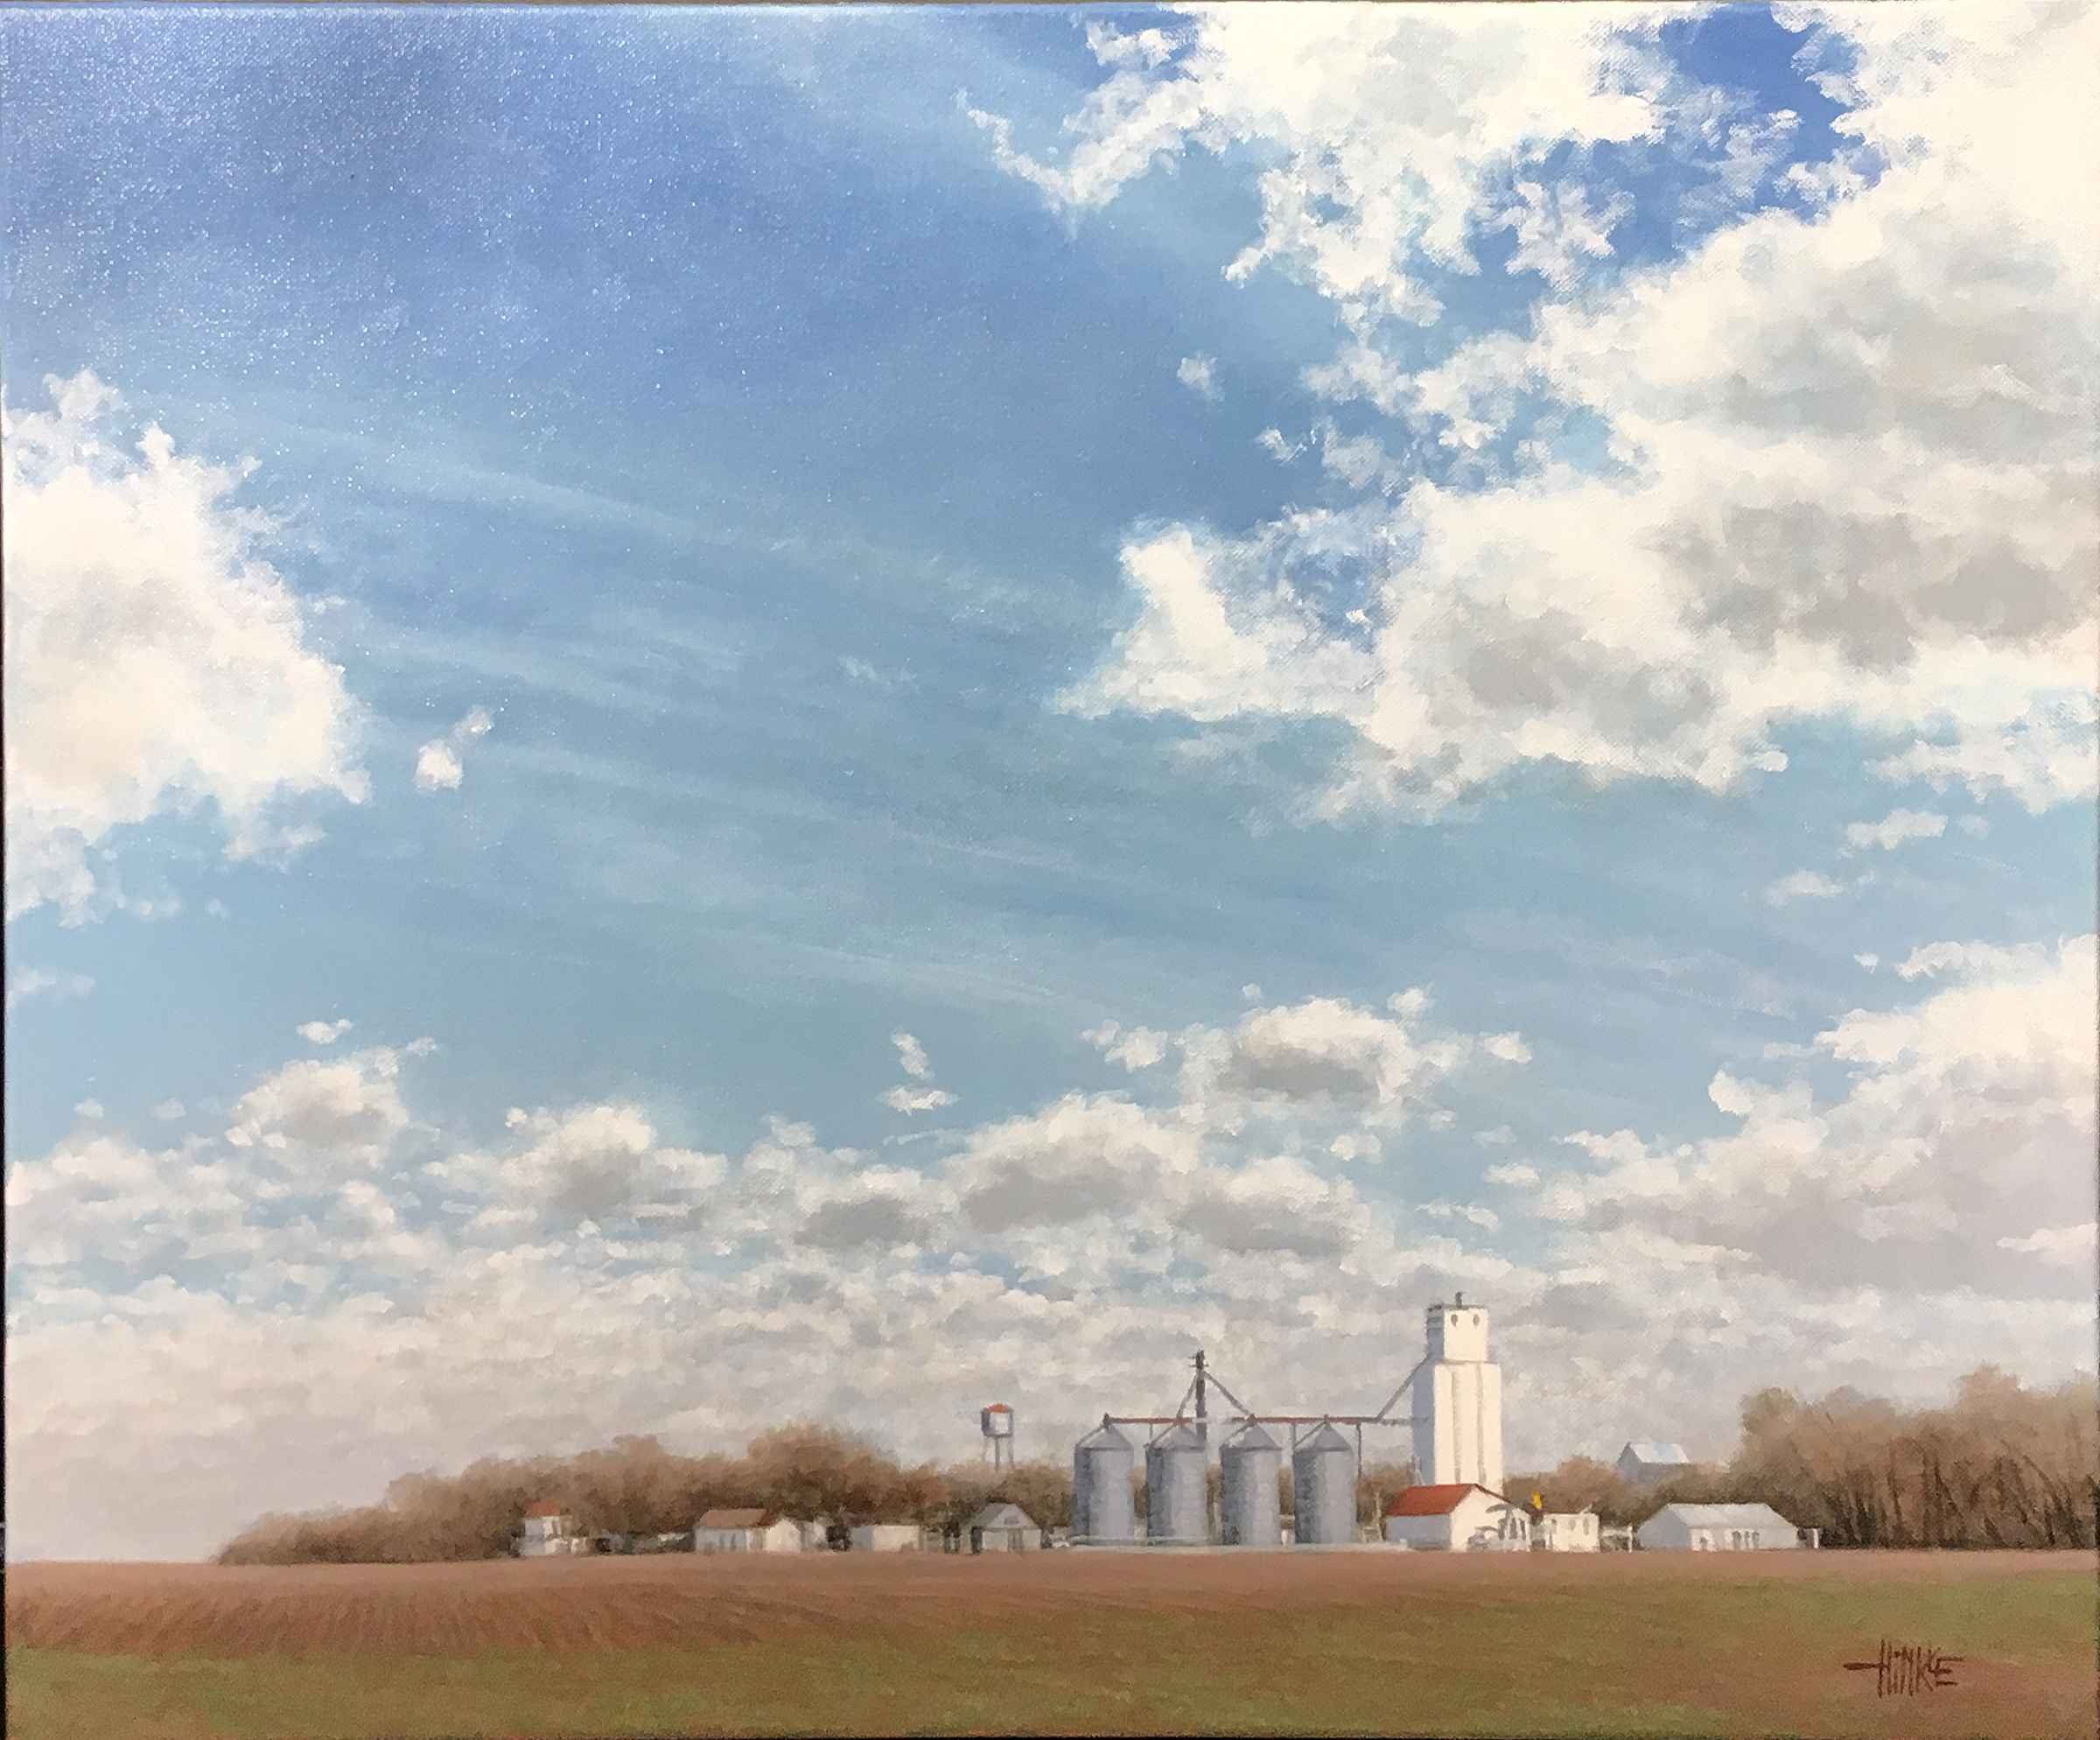 Edge of Town by  Brian Hinkle - Masterpiece Online